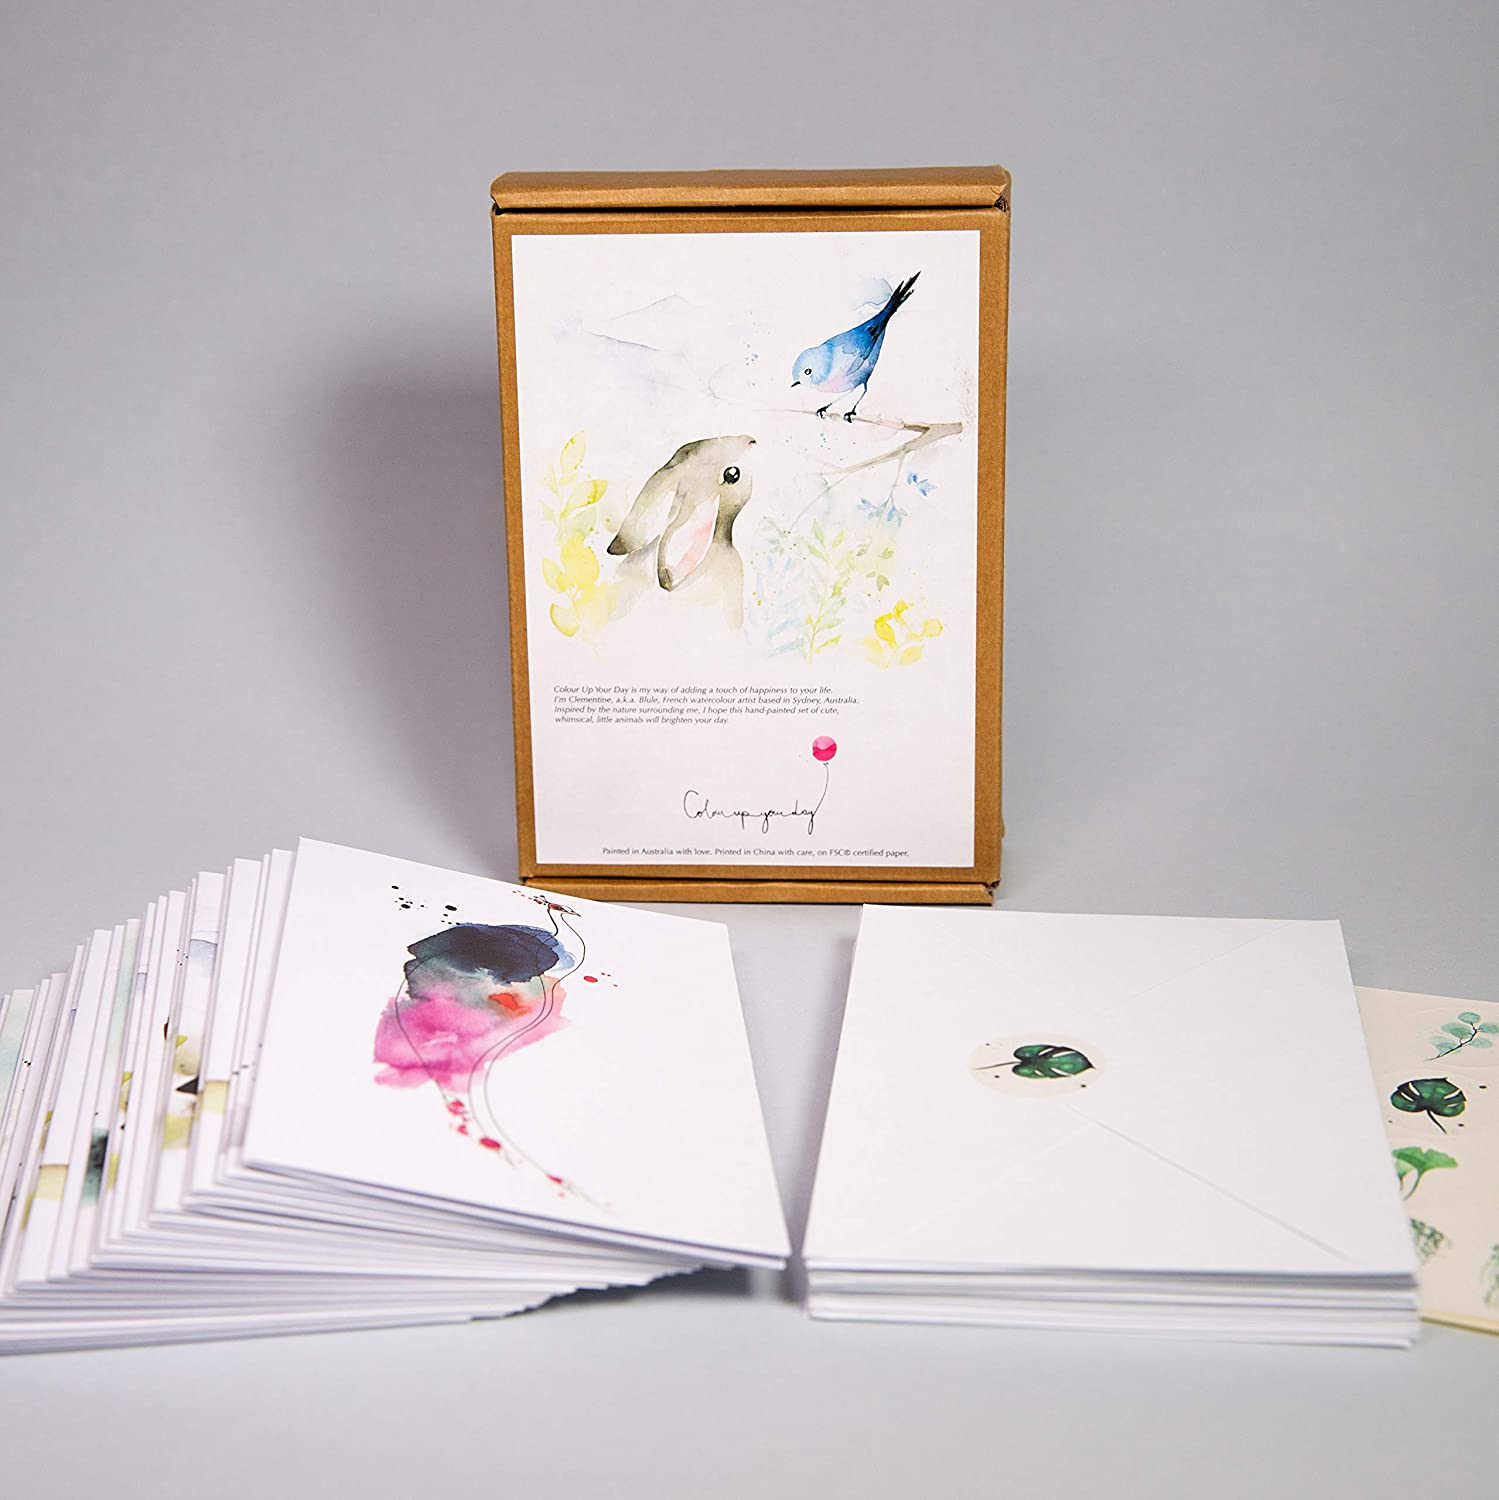 All Occasion Blank Thank you cards Cute Watercolor Wildlife assortment set by Blule Box of 24 Animals paintings Greeting Cards with Envelopes and Seal Stickers Appreciation Birthday Sympathy